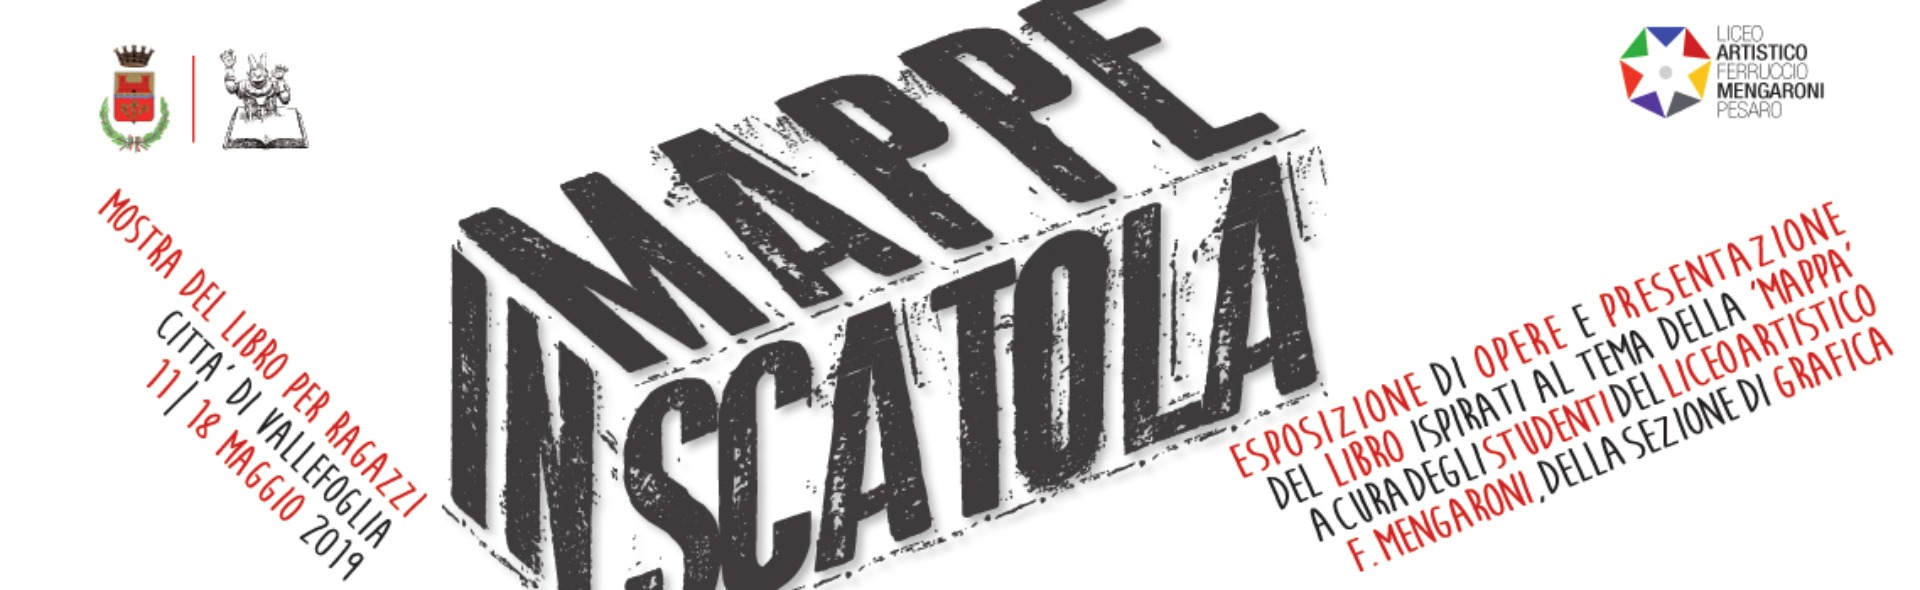 Mappe in scatola